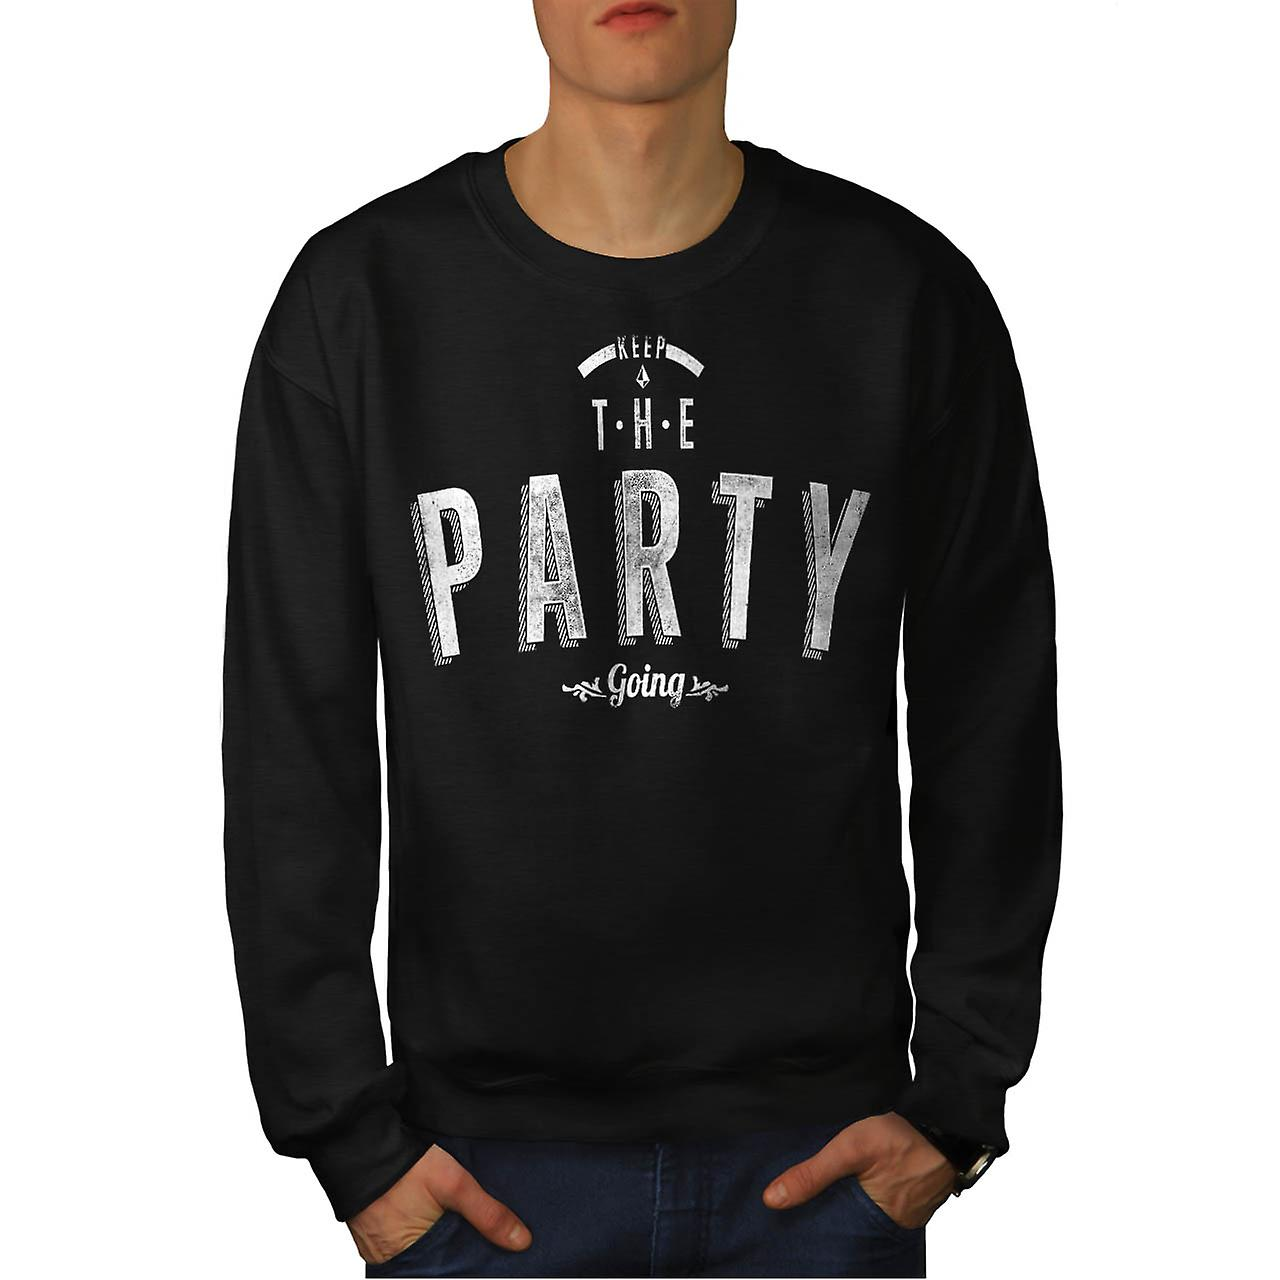 Keep The Party Going Rave Beats Men Black Sweatshirt | Wellcoda